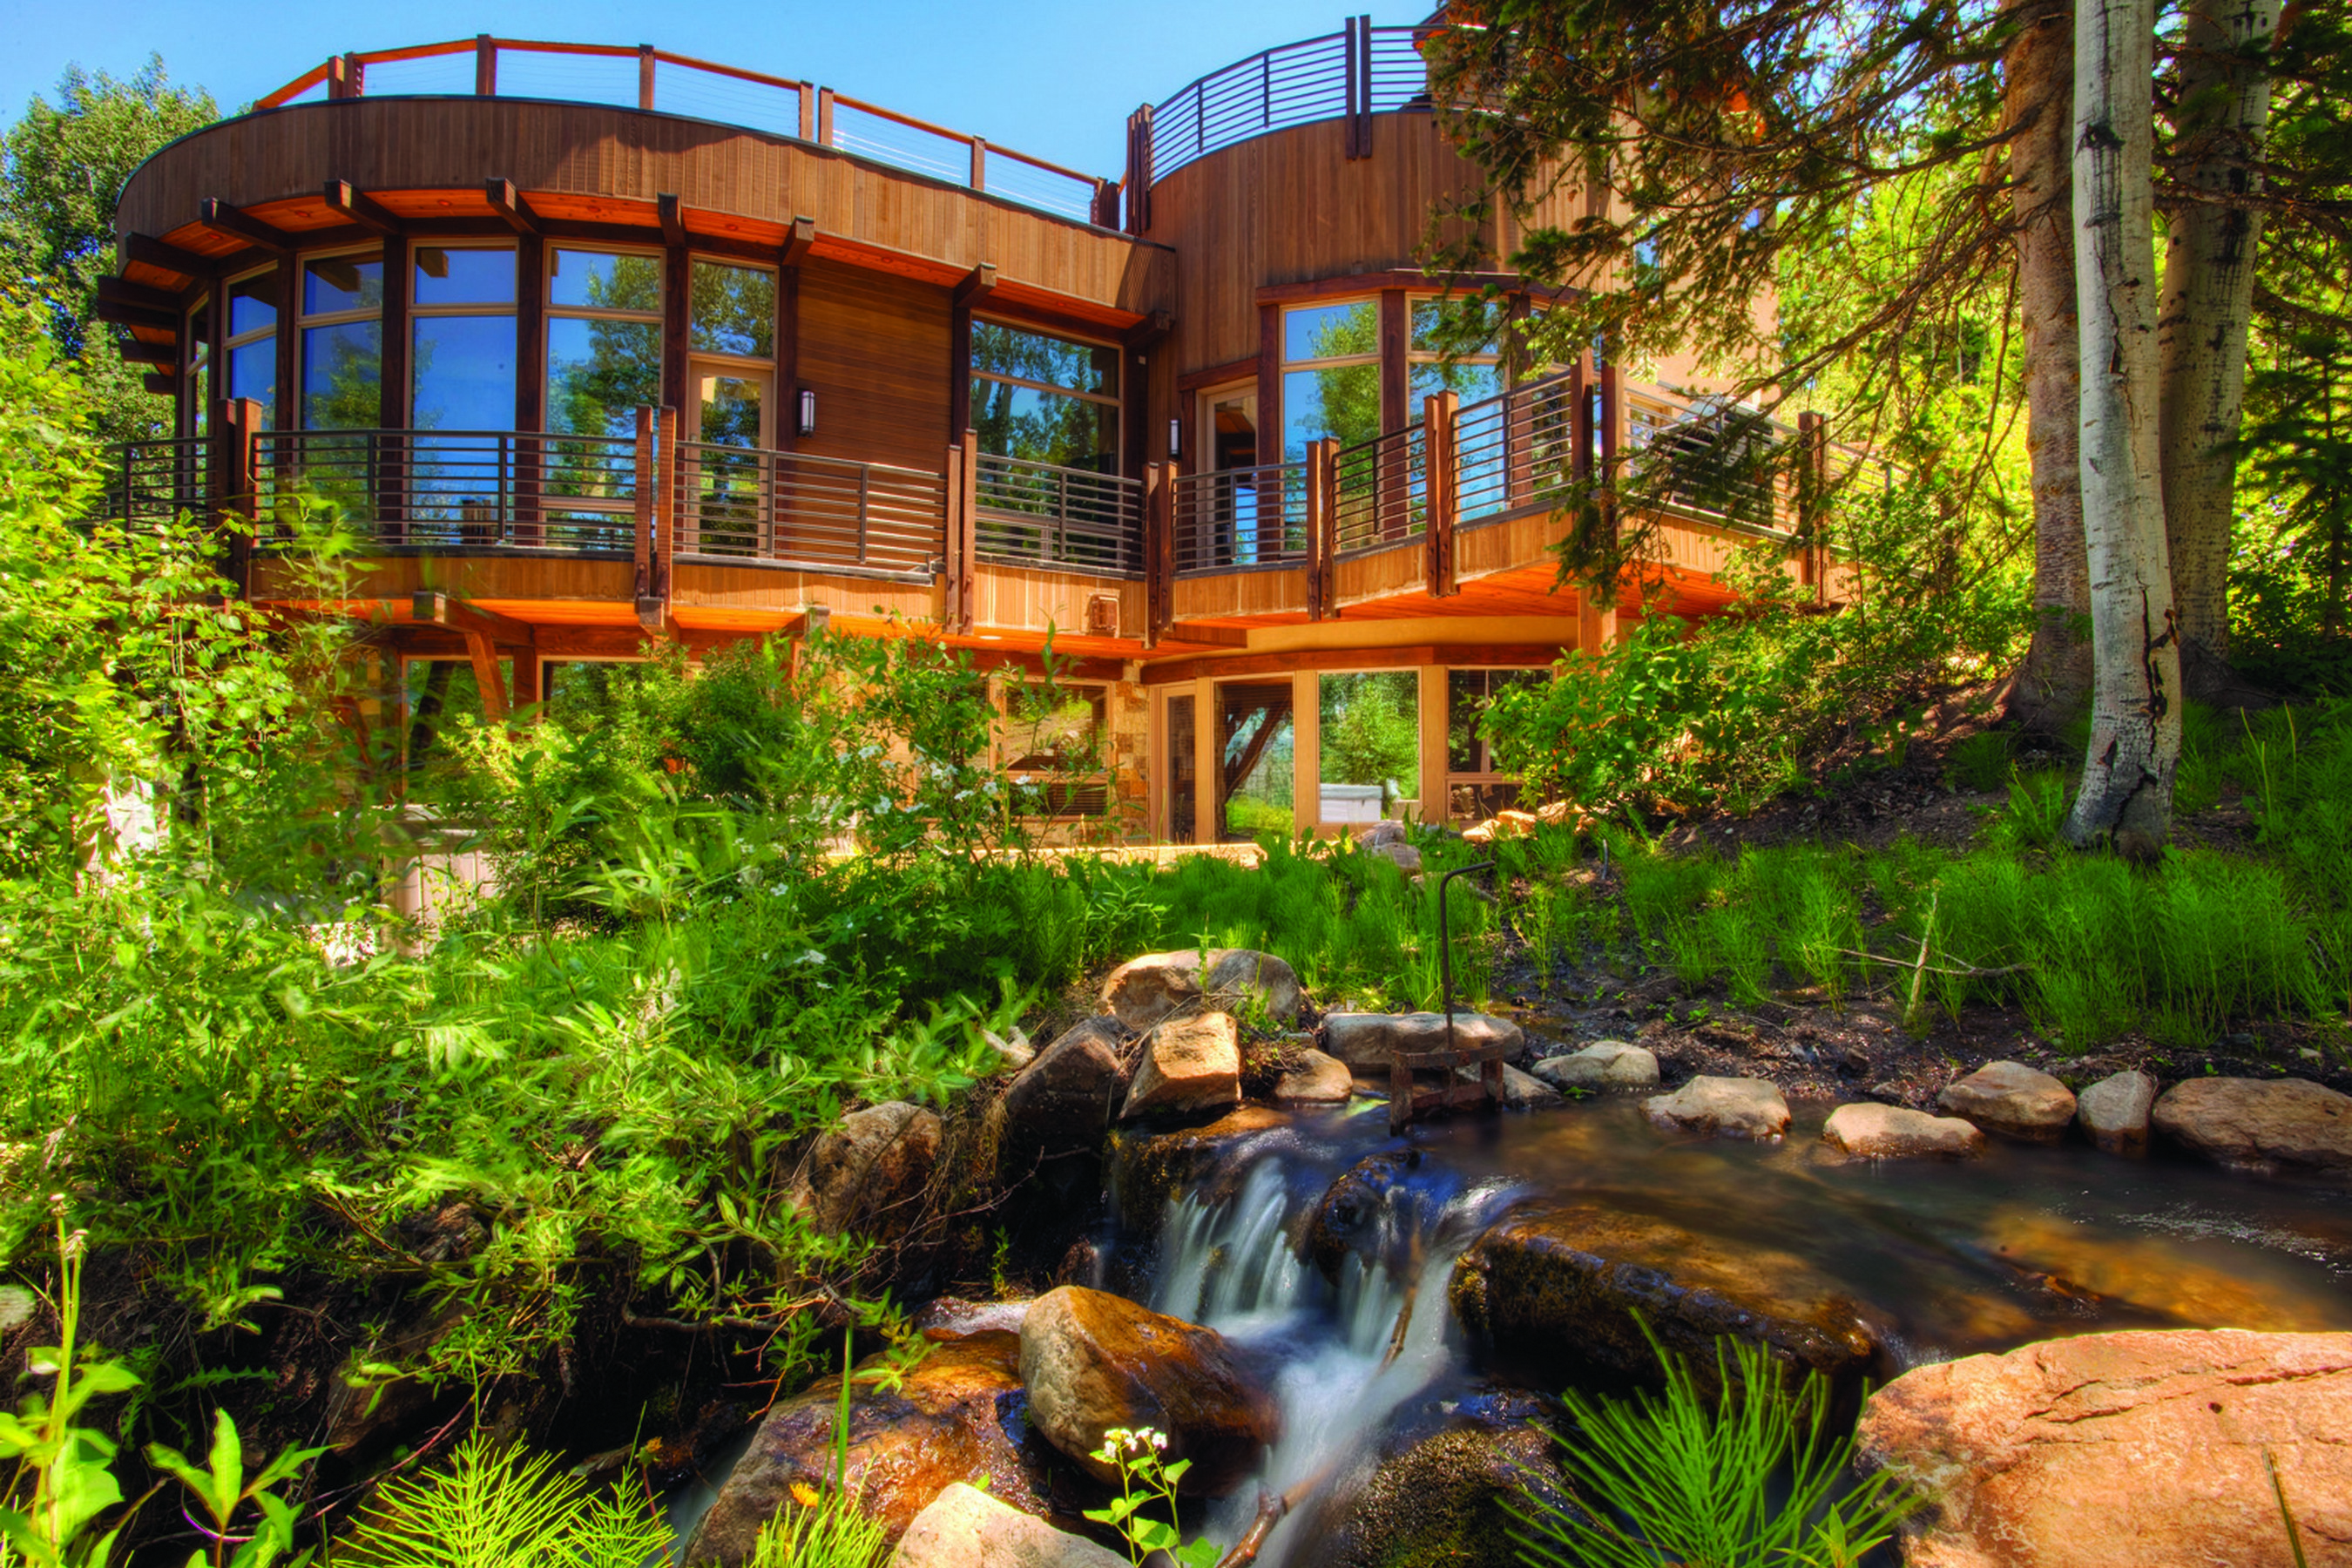 Villa per Vendita alle ore The Ultimate Mountain Home 1457 Wood Rd Snowmass Village, Colorado, 81615 Stati Uniti